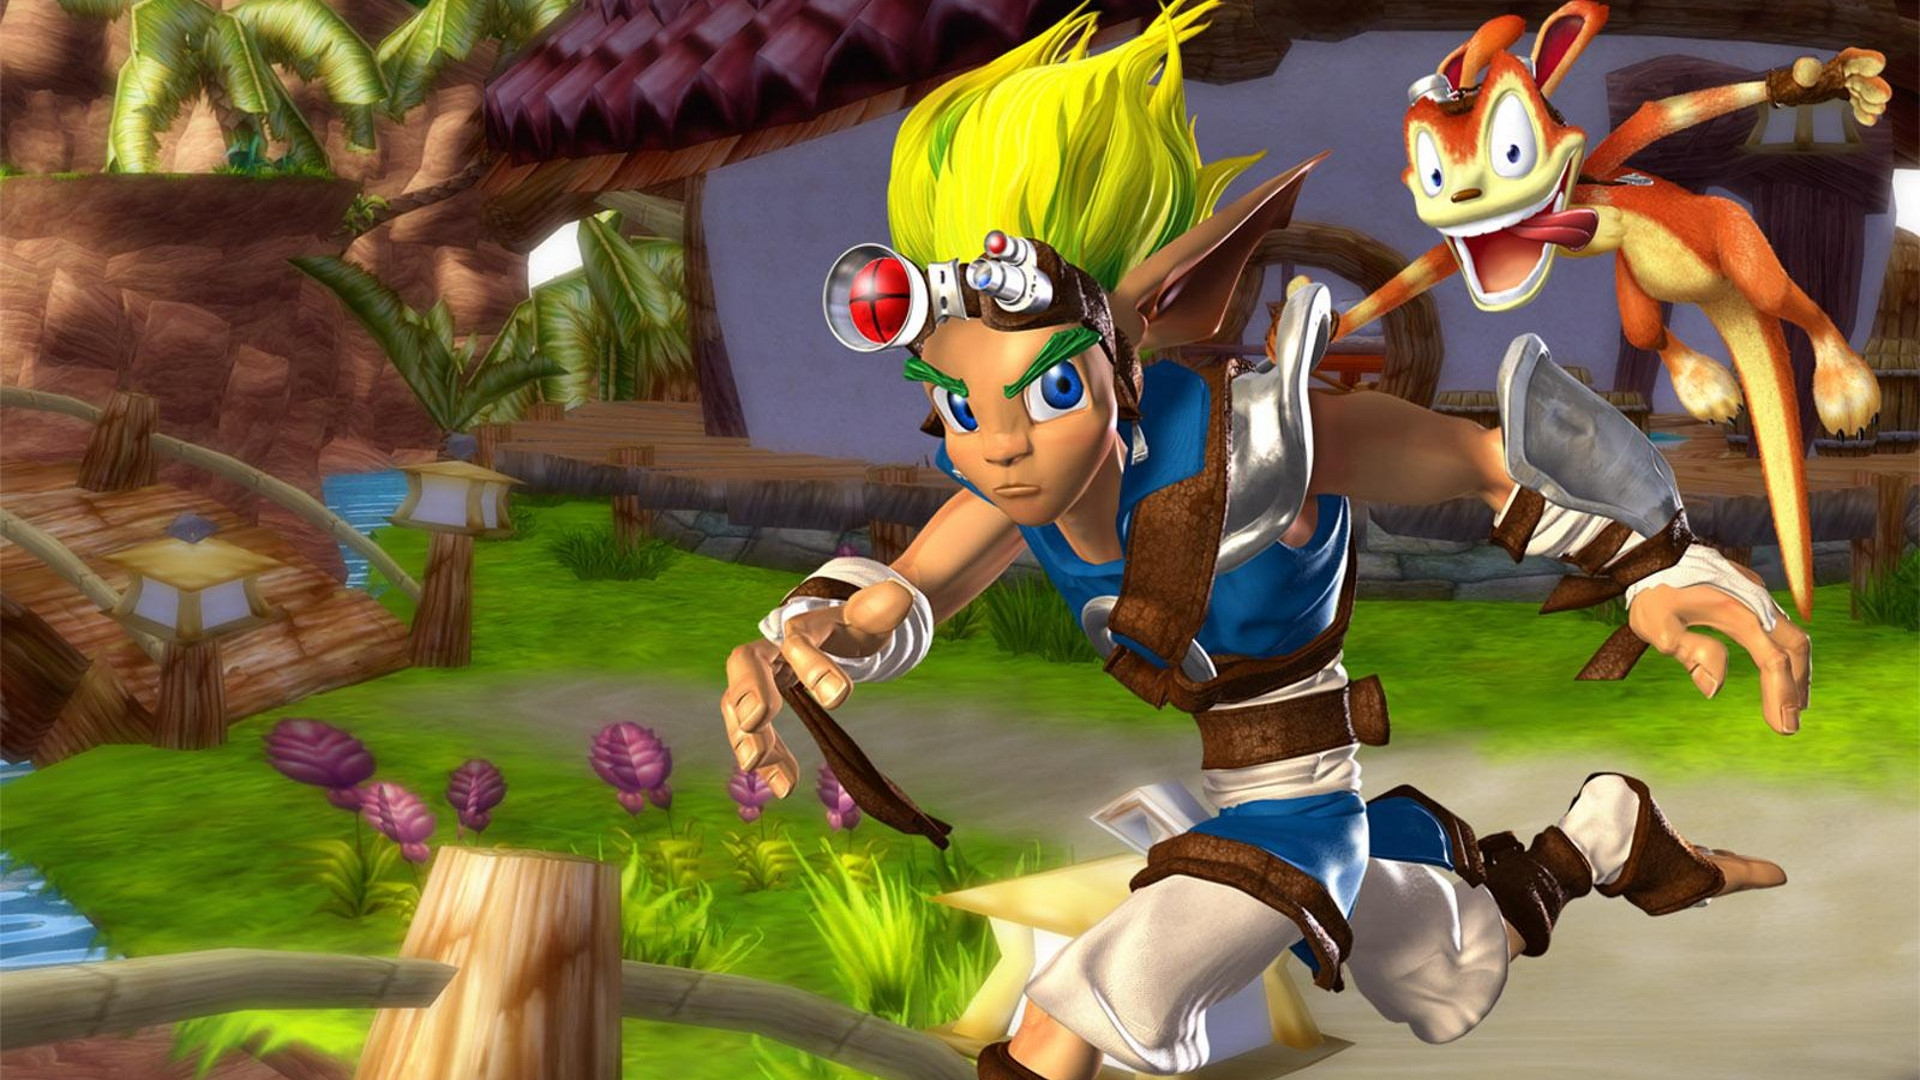 jak and daxter: the precursor legacy full hd wallpaper and